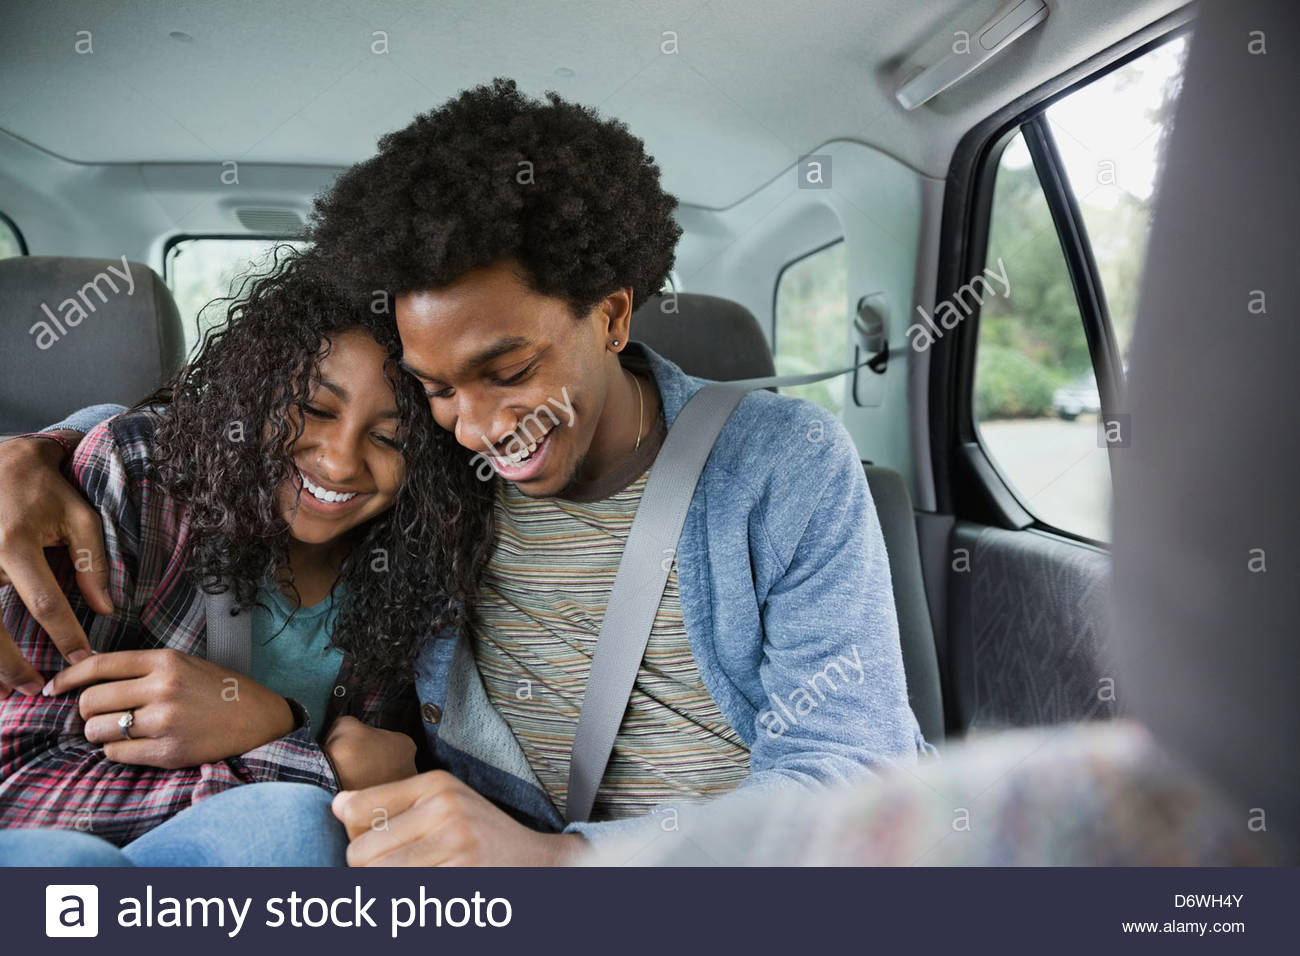 Romantic young couple sitting in truck - Stock Image